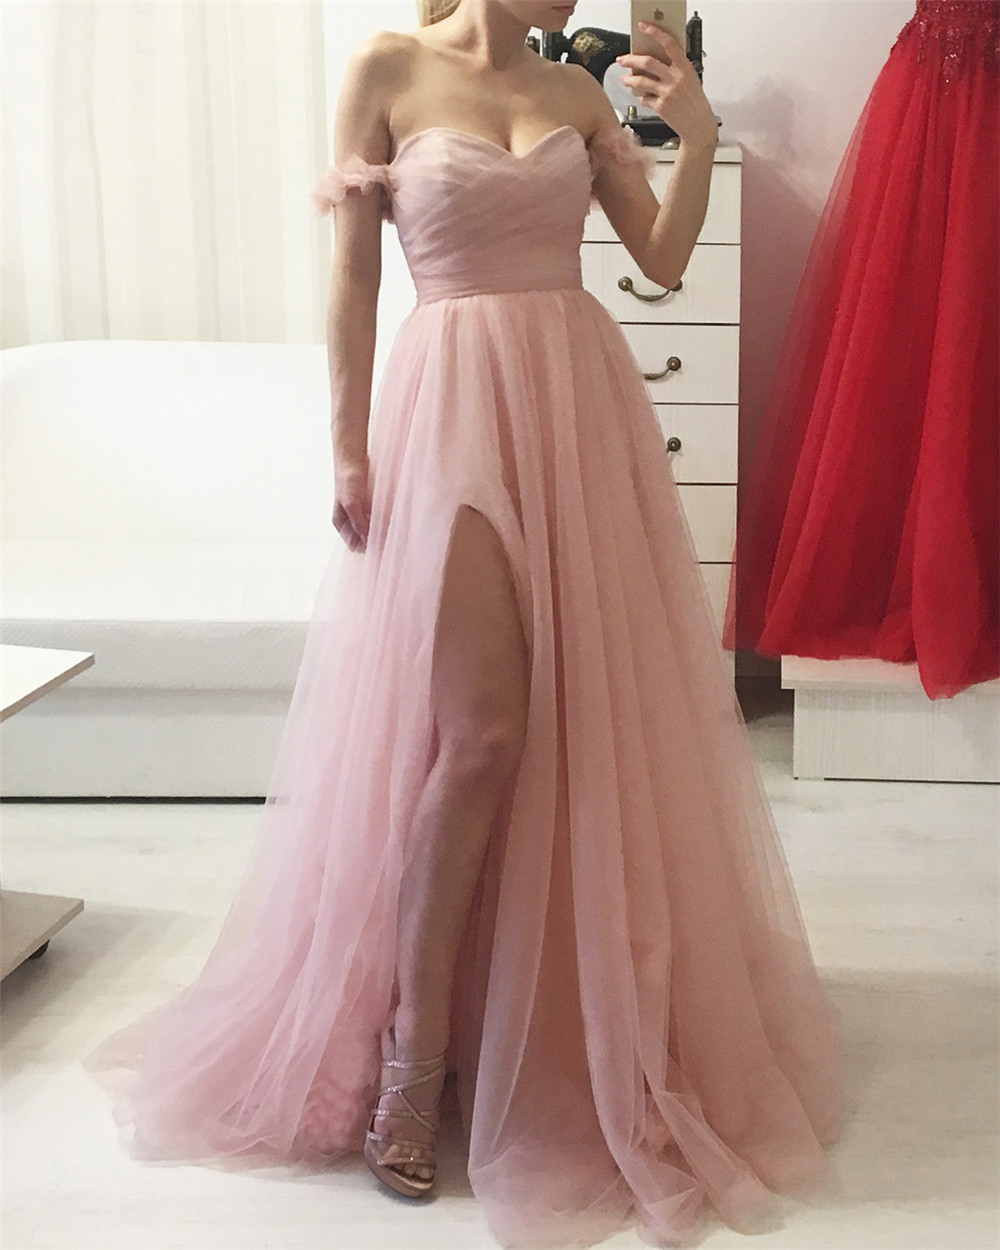 Wonderful Pink Tulle Long Prom Dresses Off The Shoulder A Line Floor Length Boat Neck Sexy